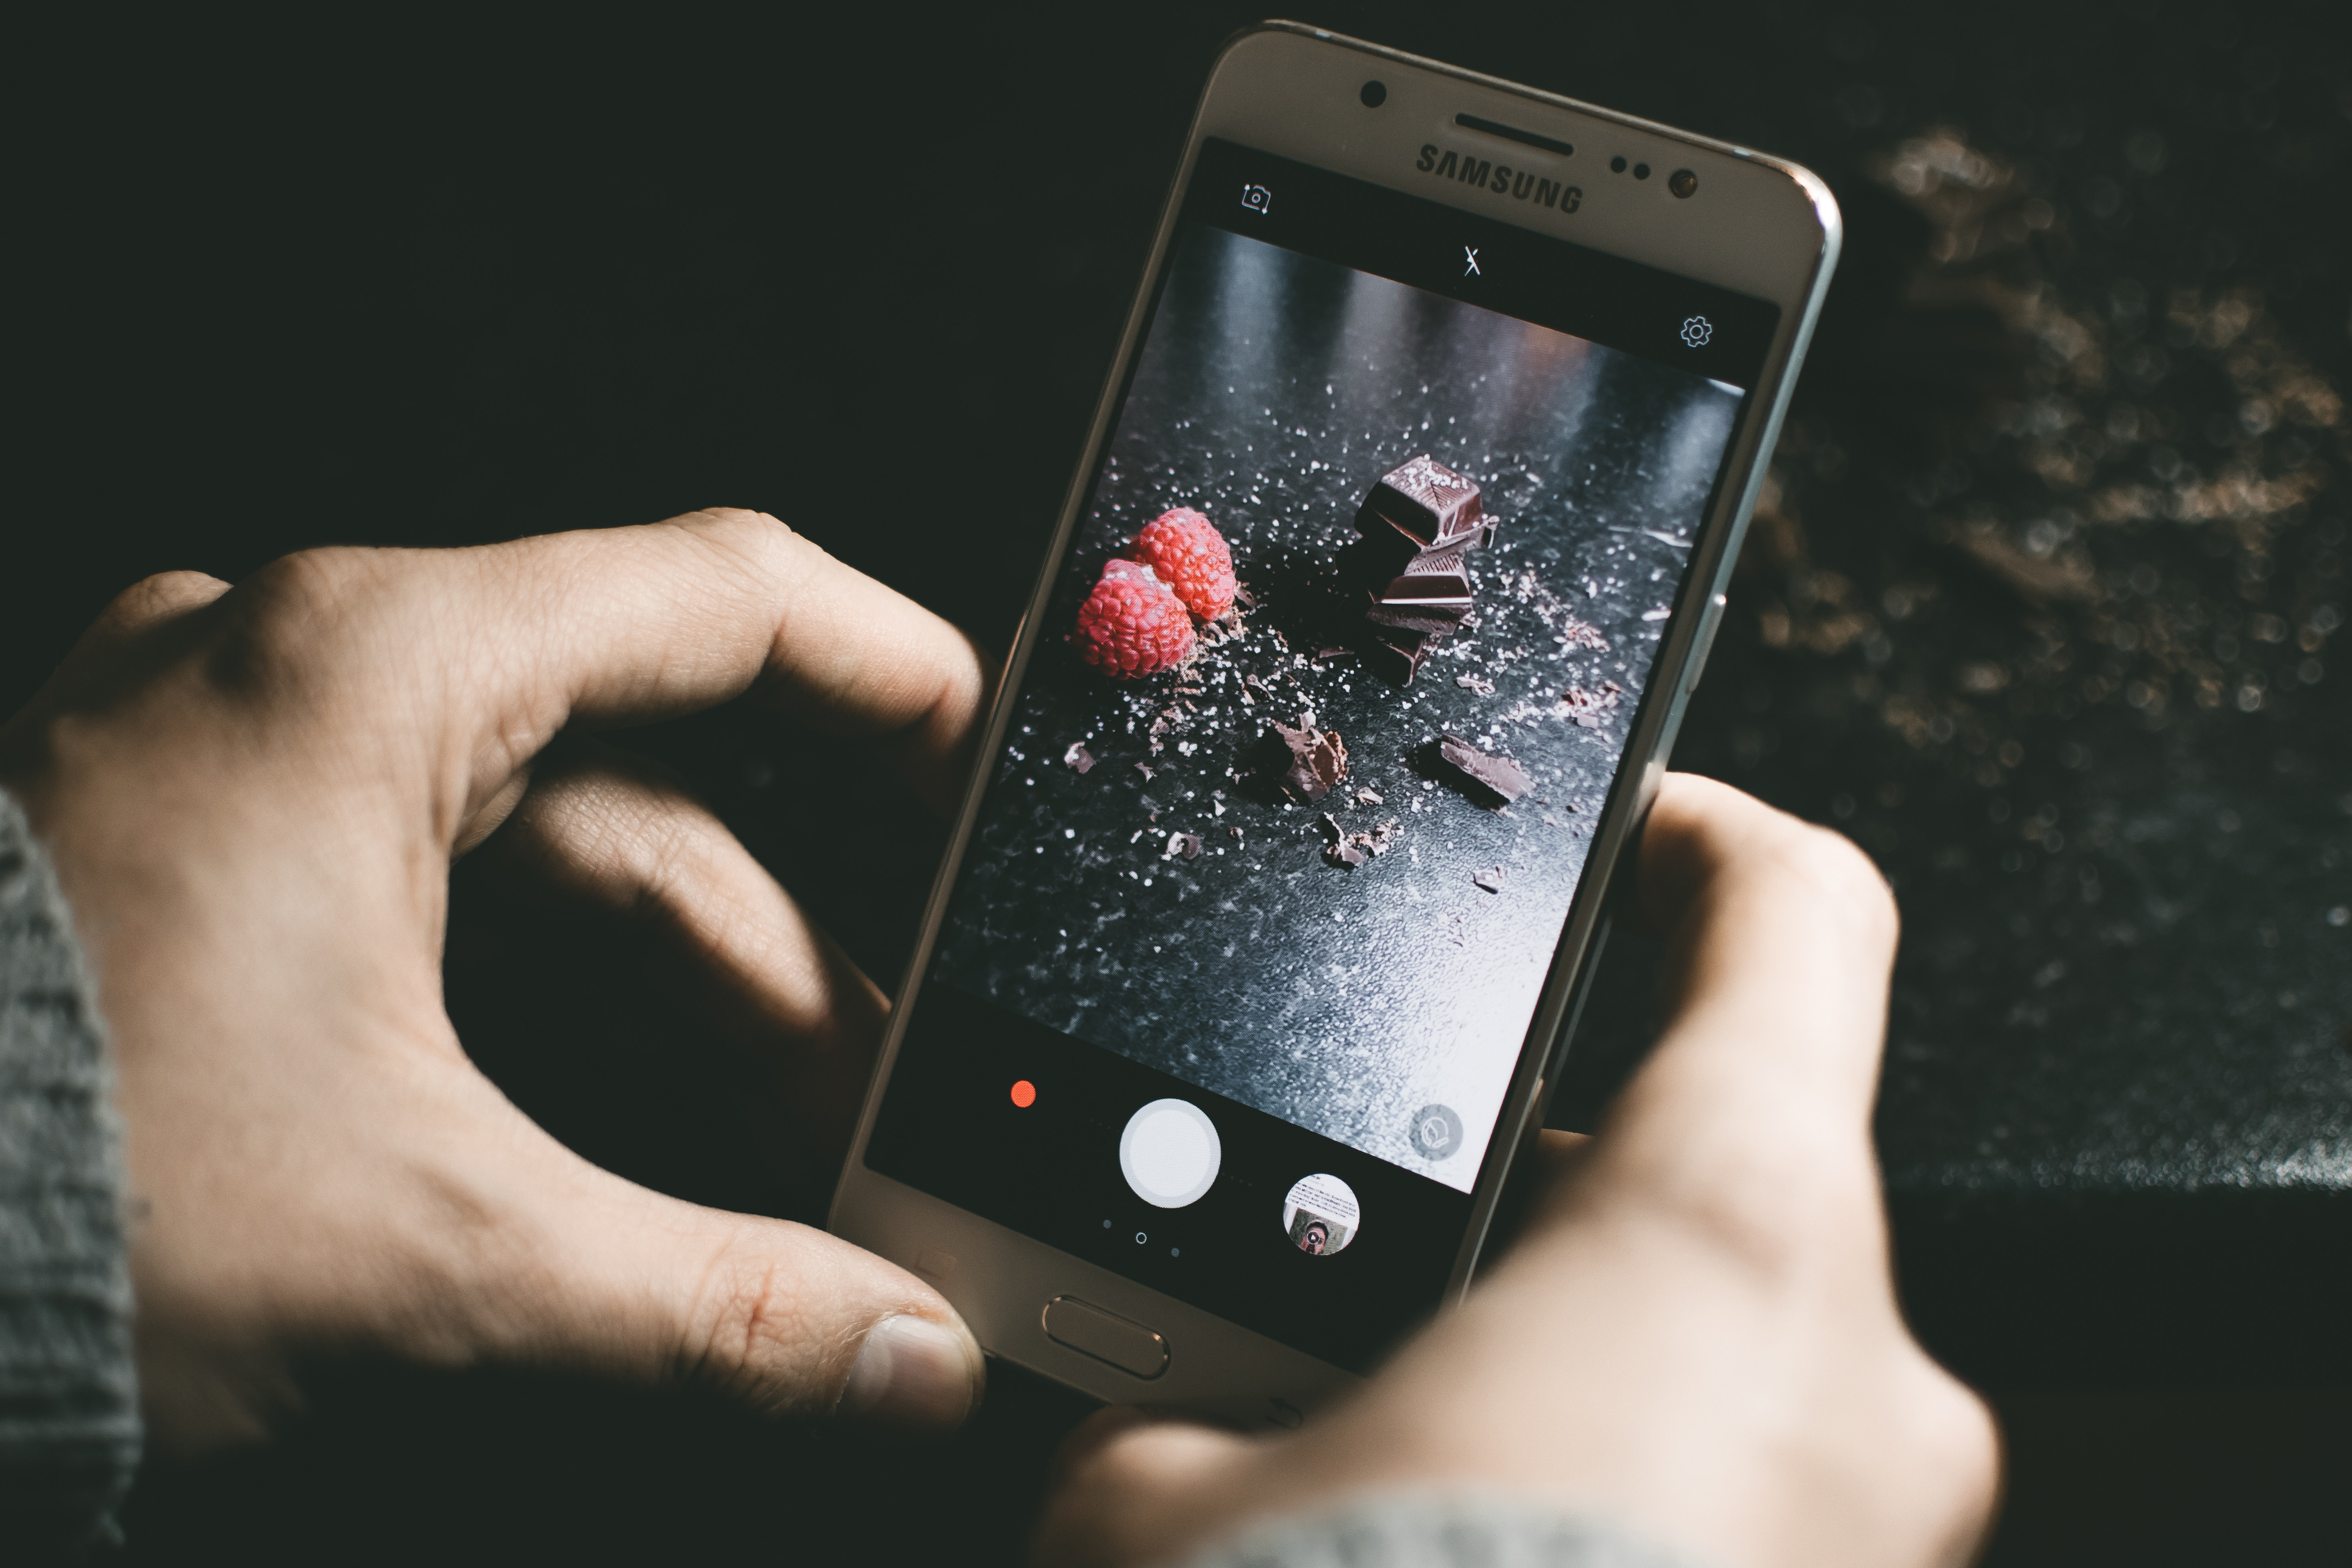 Gray Samsung Smartphone Showing Chocolates, Blur, Photo, Touch, Telephone, HQ Photo